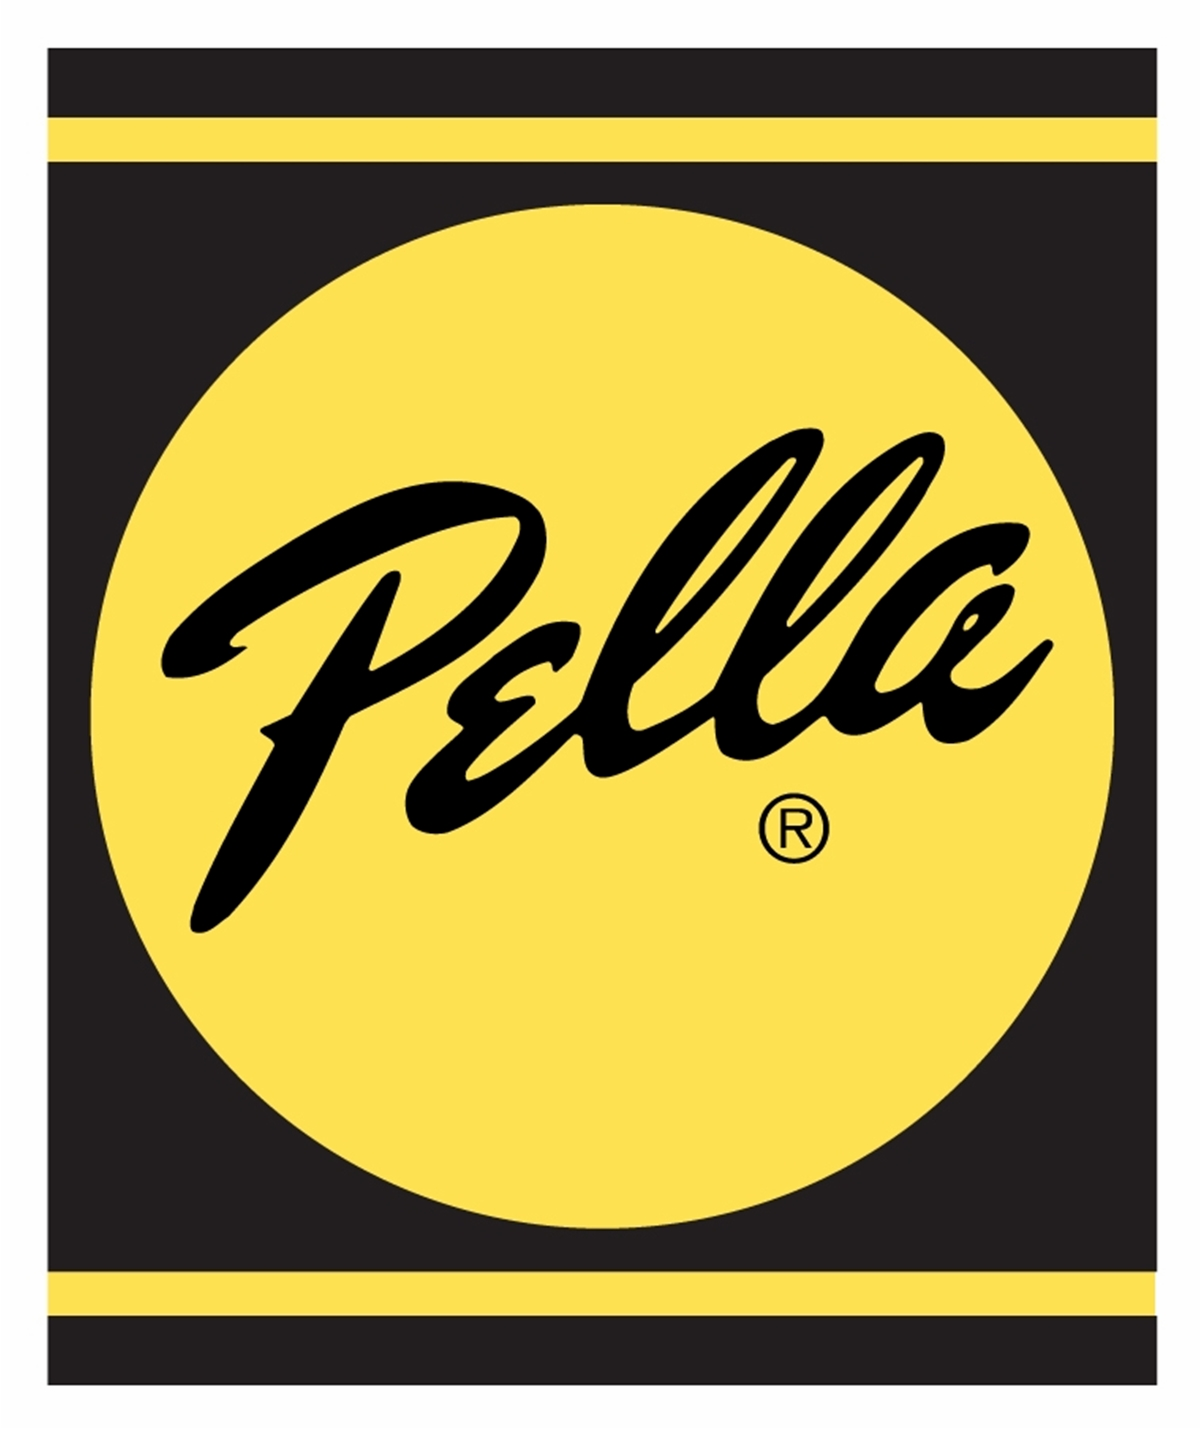 pella online dating Pella corporation complaints and reviews contact information phone number: +1 855 735 5232 submit your complaint or review on pella corporation.